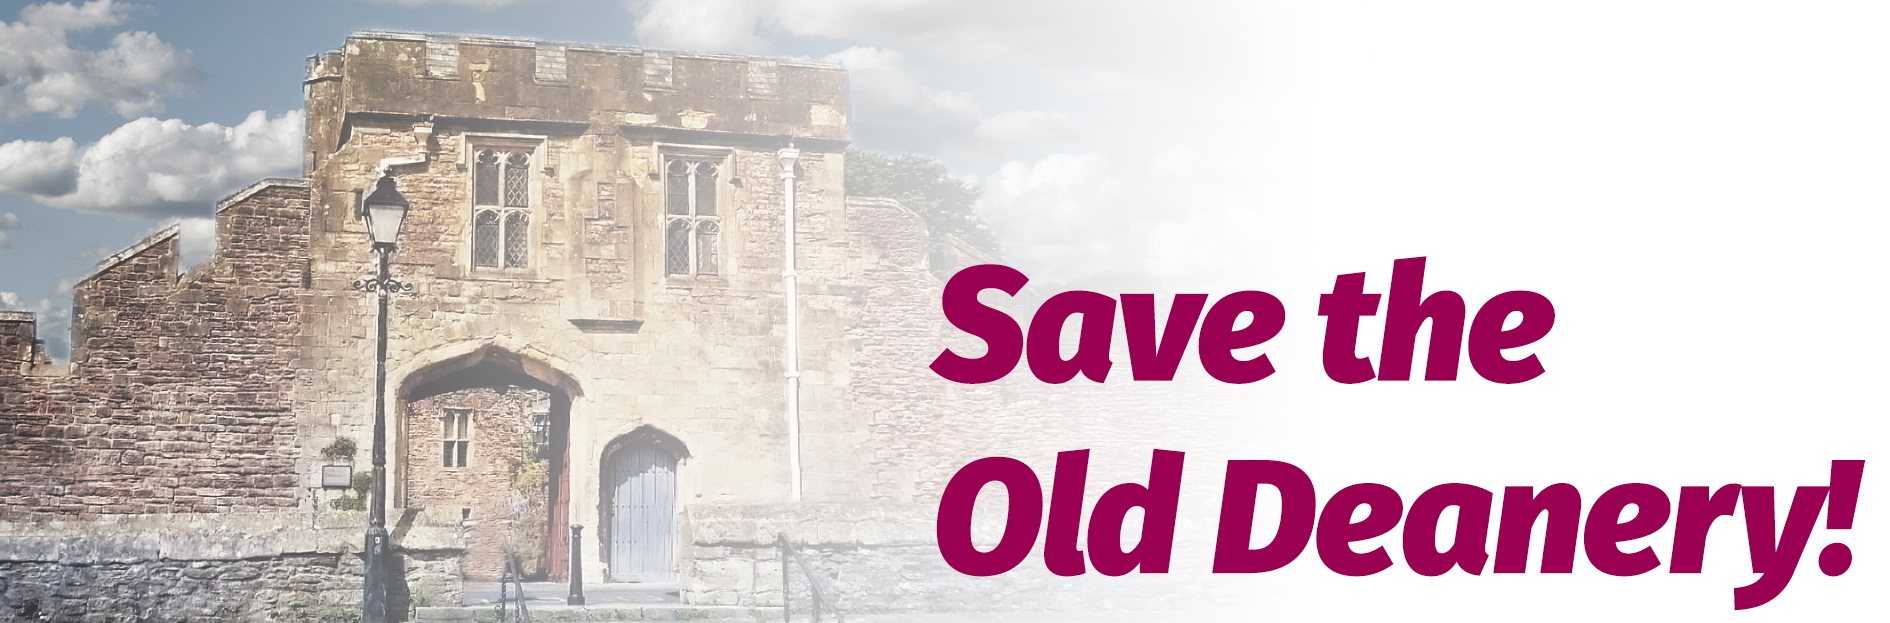 Save the Old Deanery!